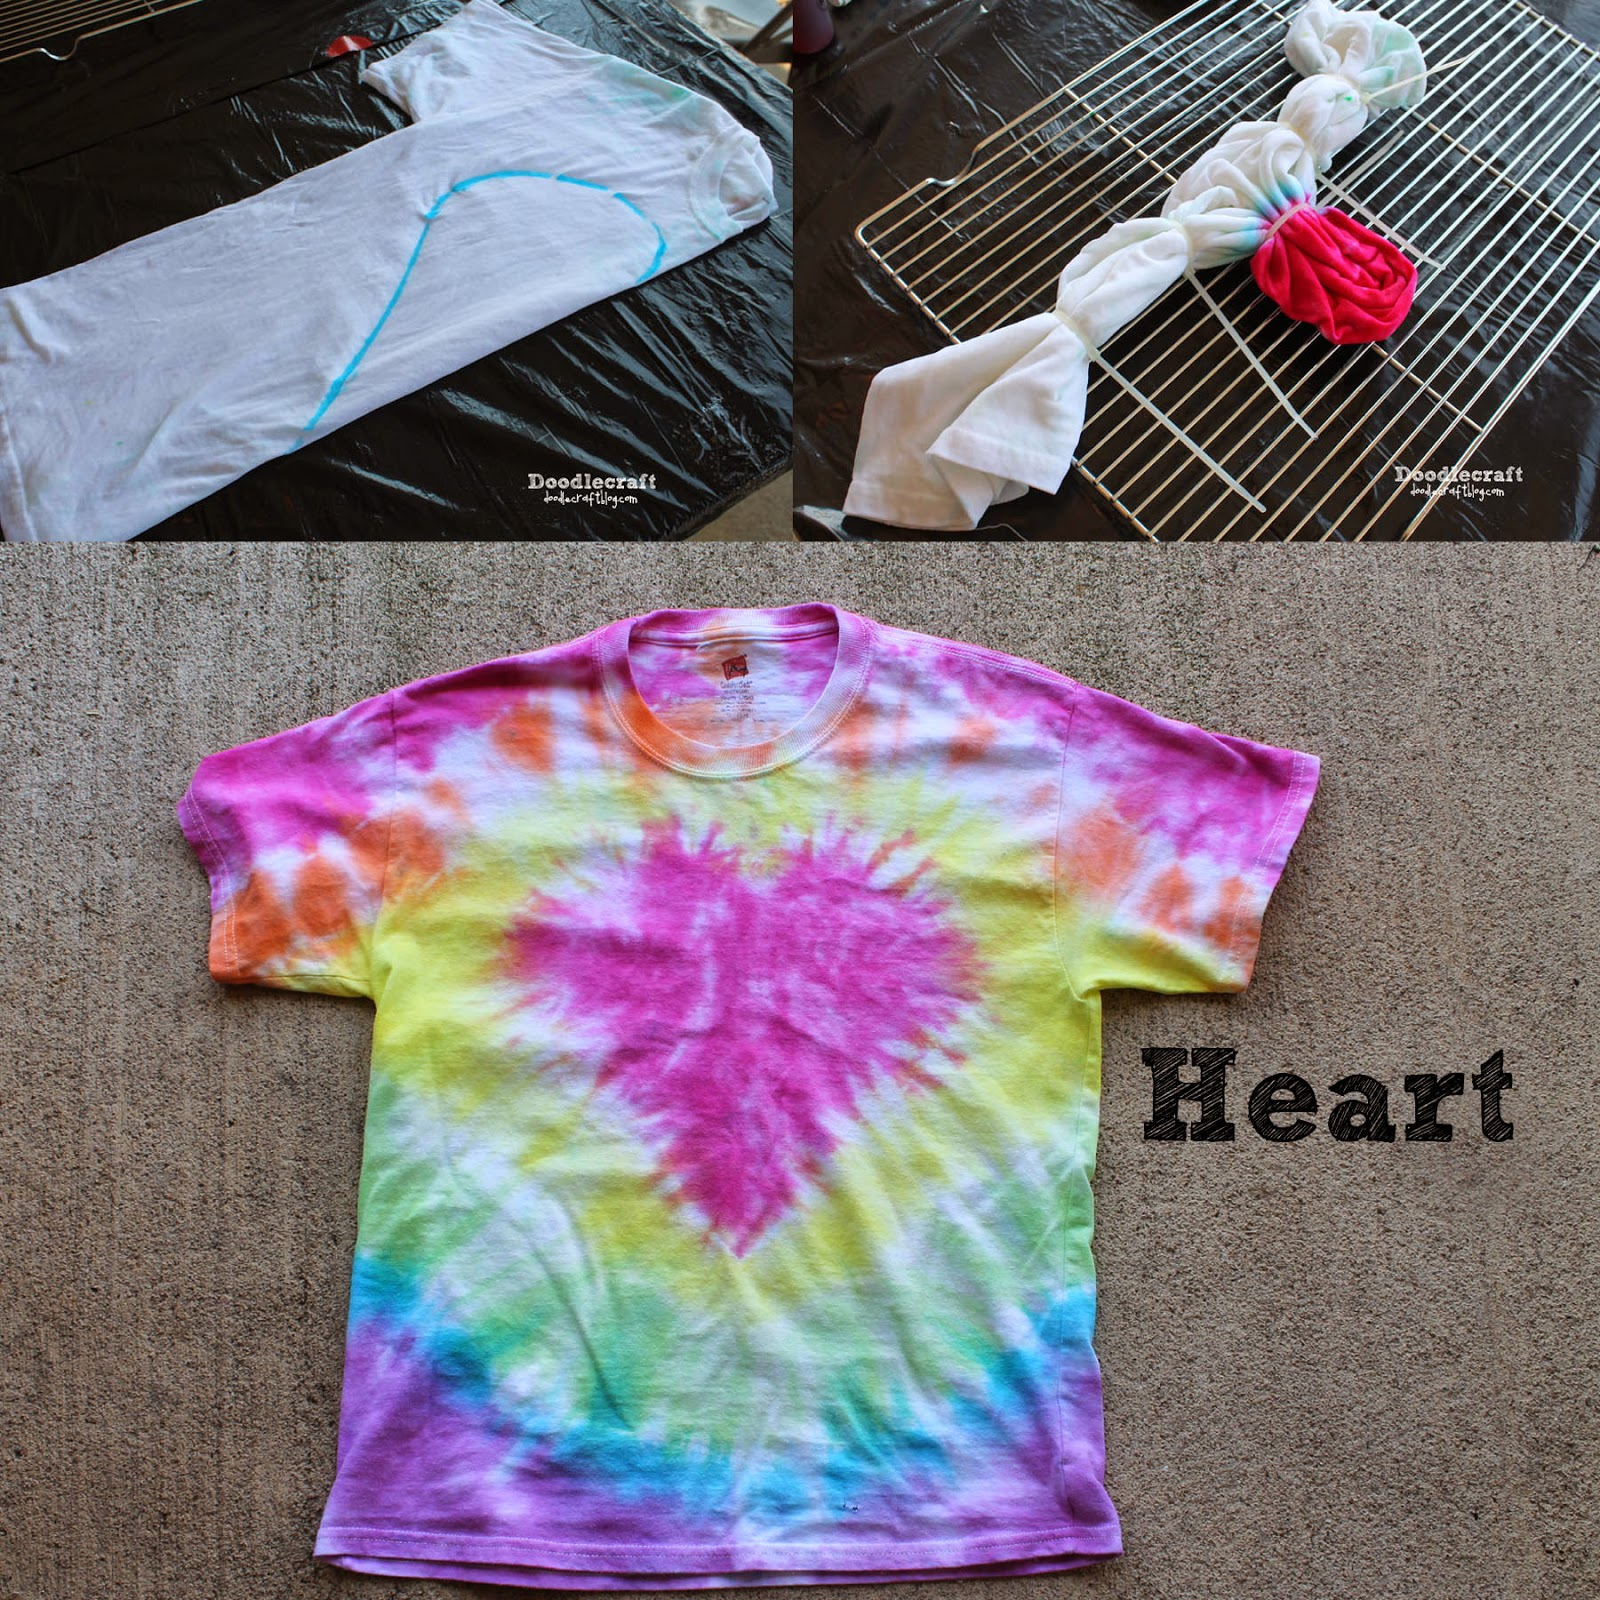 Doodlecraft tulip tie dye t shirt party for Tie dye t shirt patterns